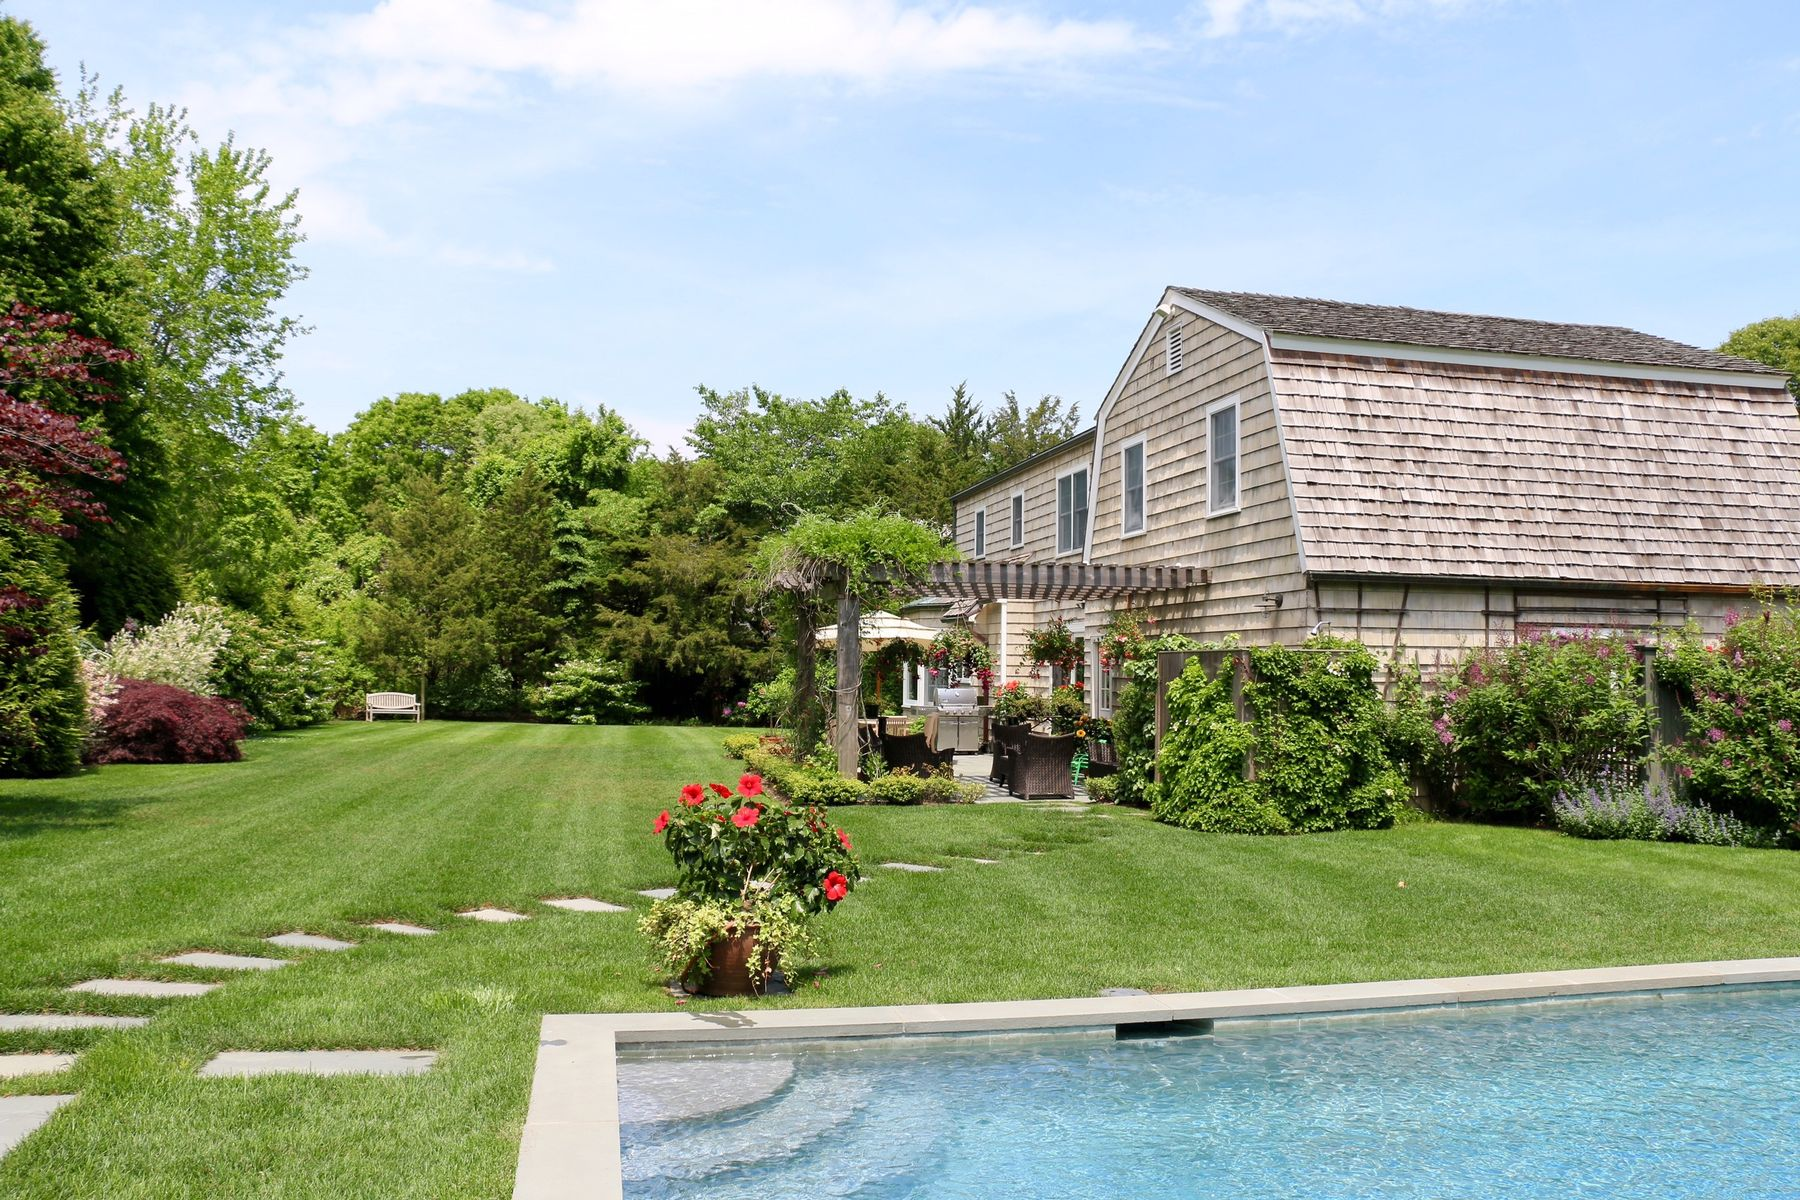 Single Family Home for Rent at East Hampton Edge Of Village 21 Inkberry Street East Hampton, New York 11937 United States